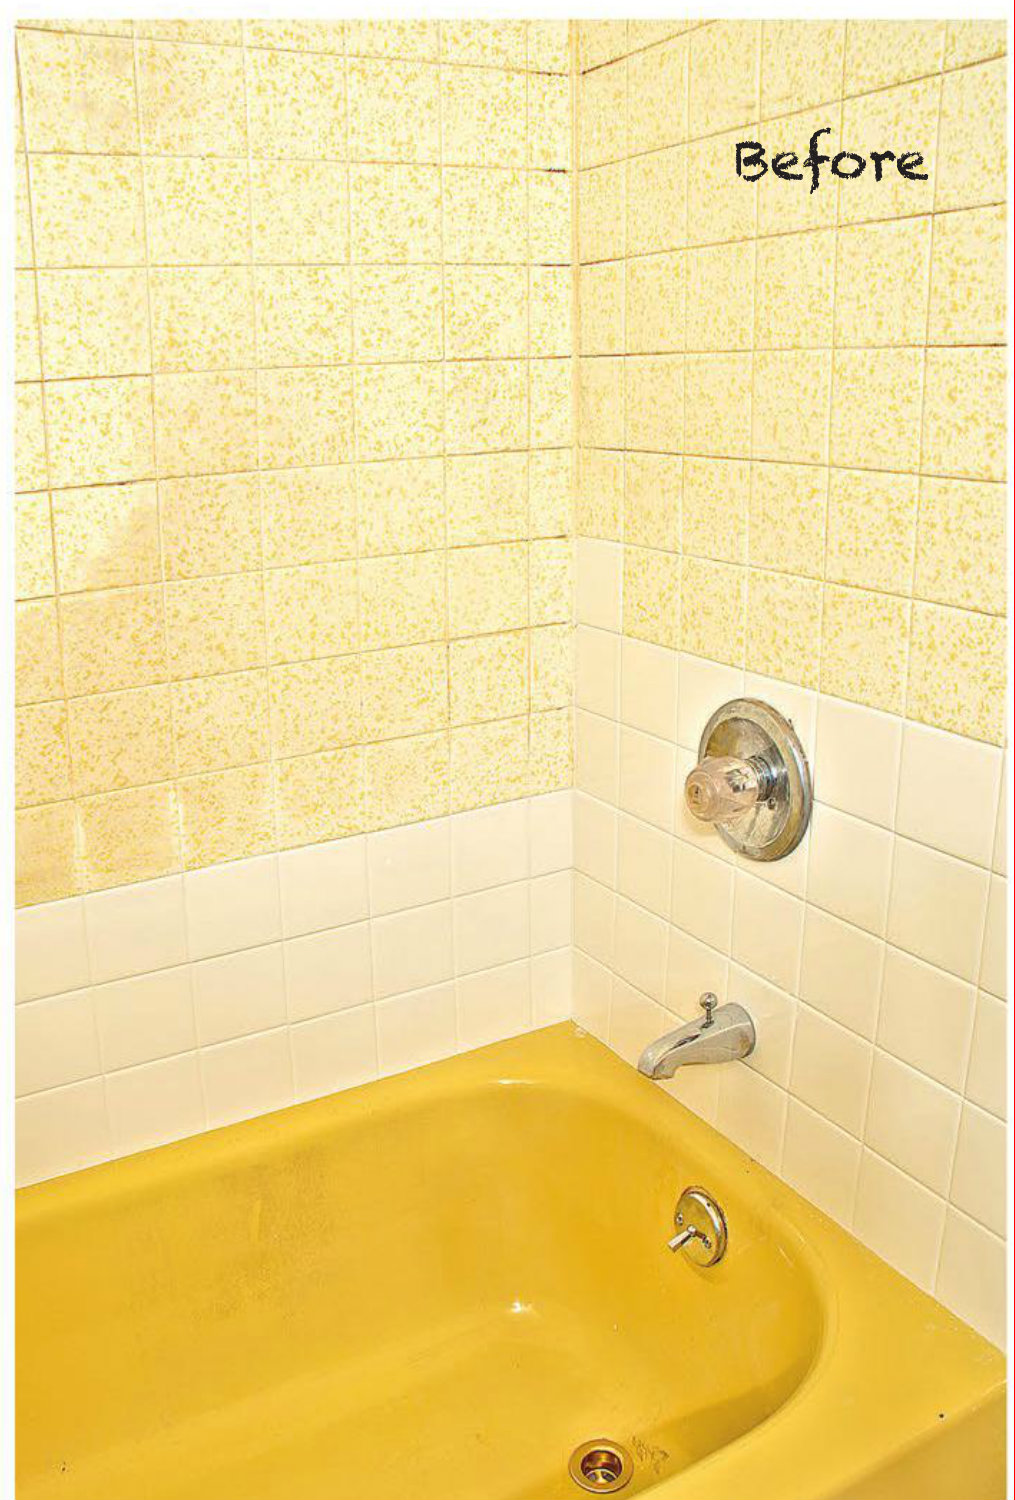 Fullsize Of How To Regrout Tile